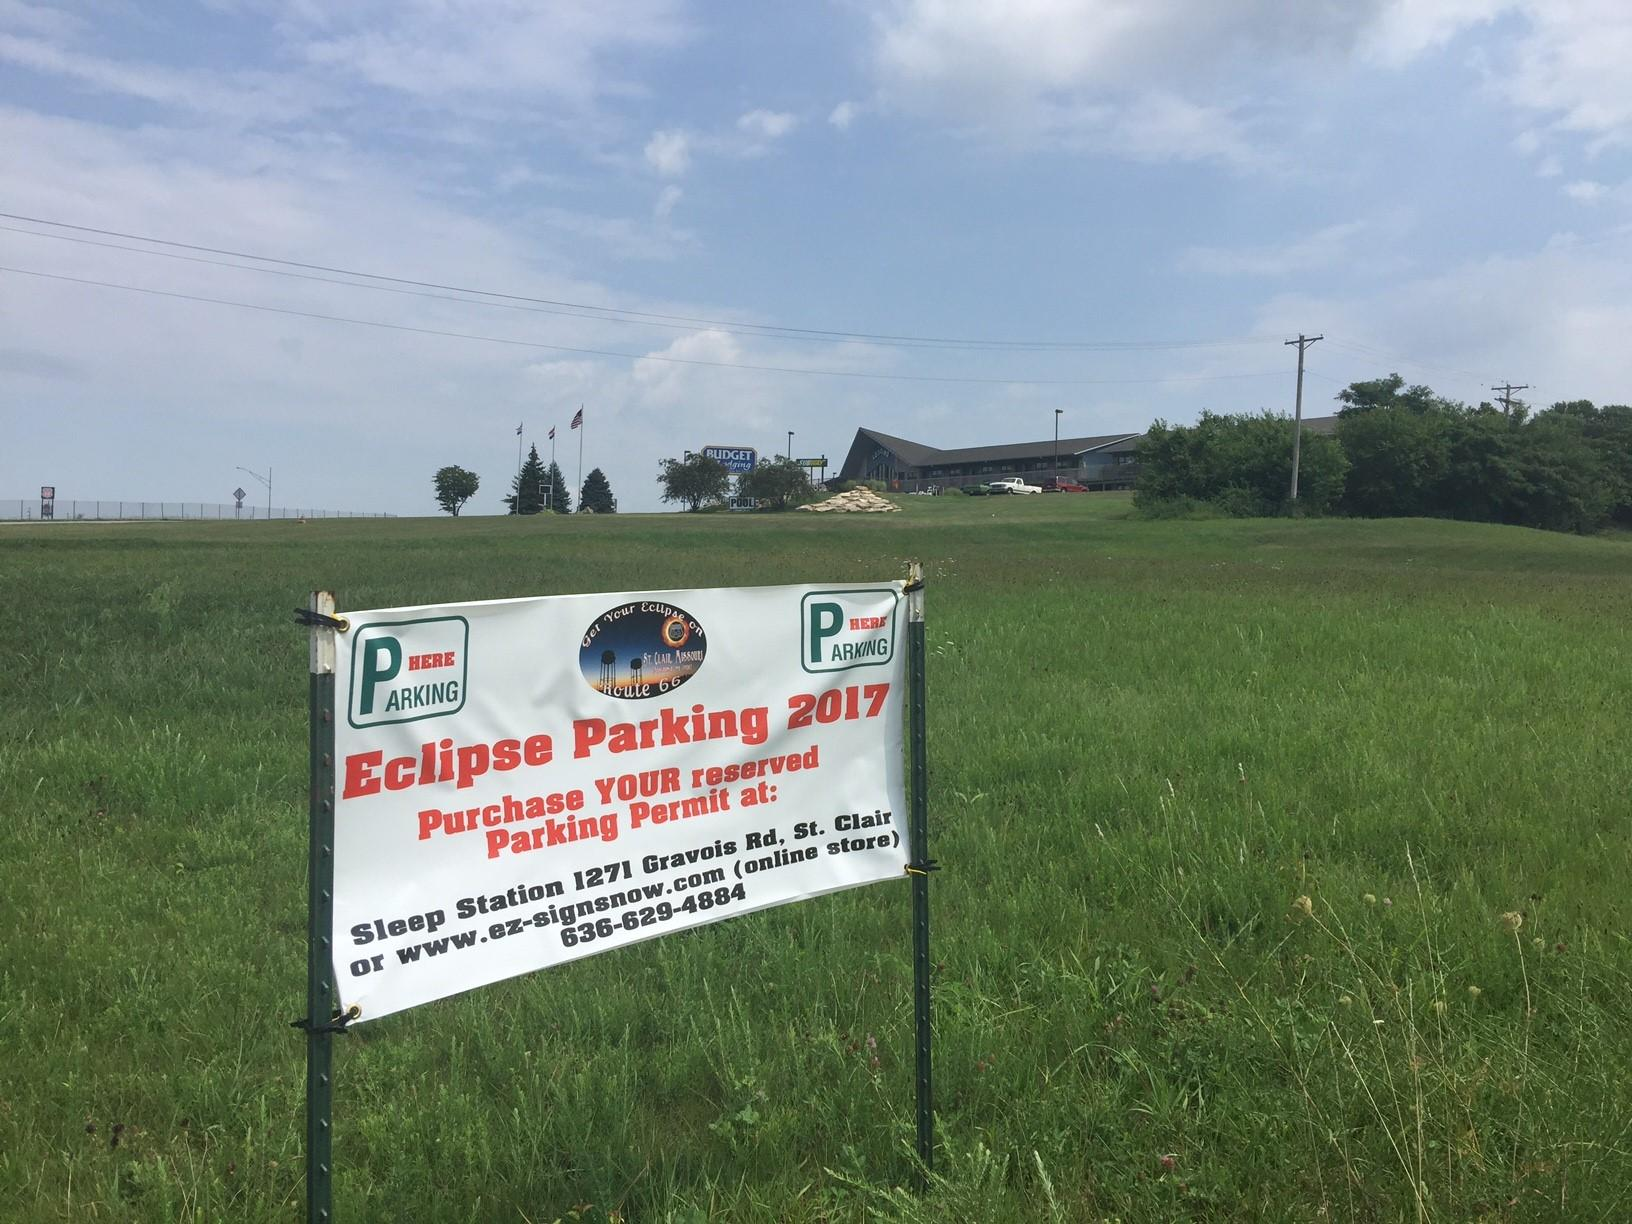 Missouri's small cities and businesses set to cash in on the eclipse | St. Louis Public Radio